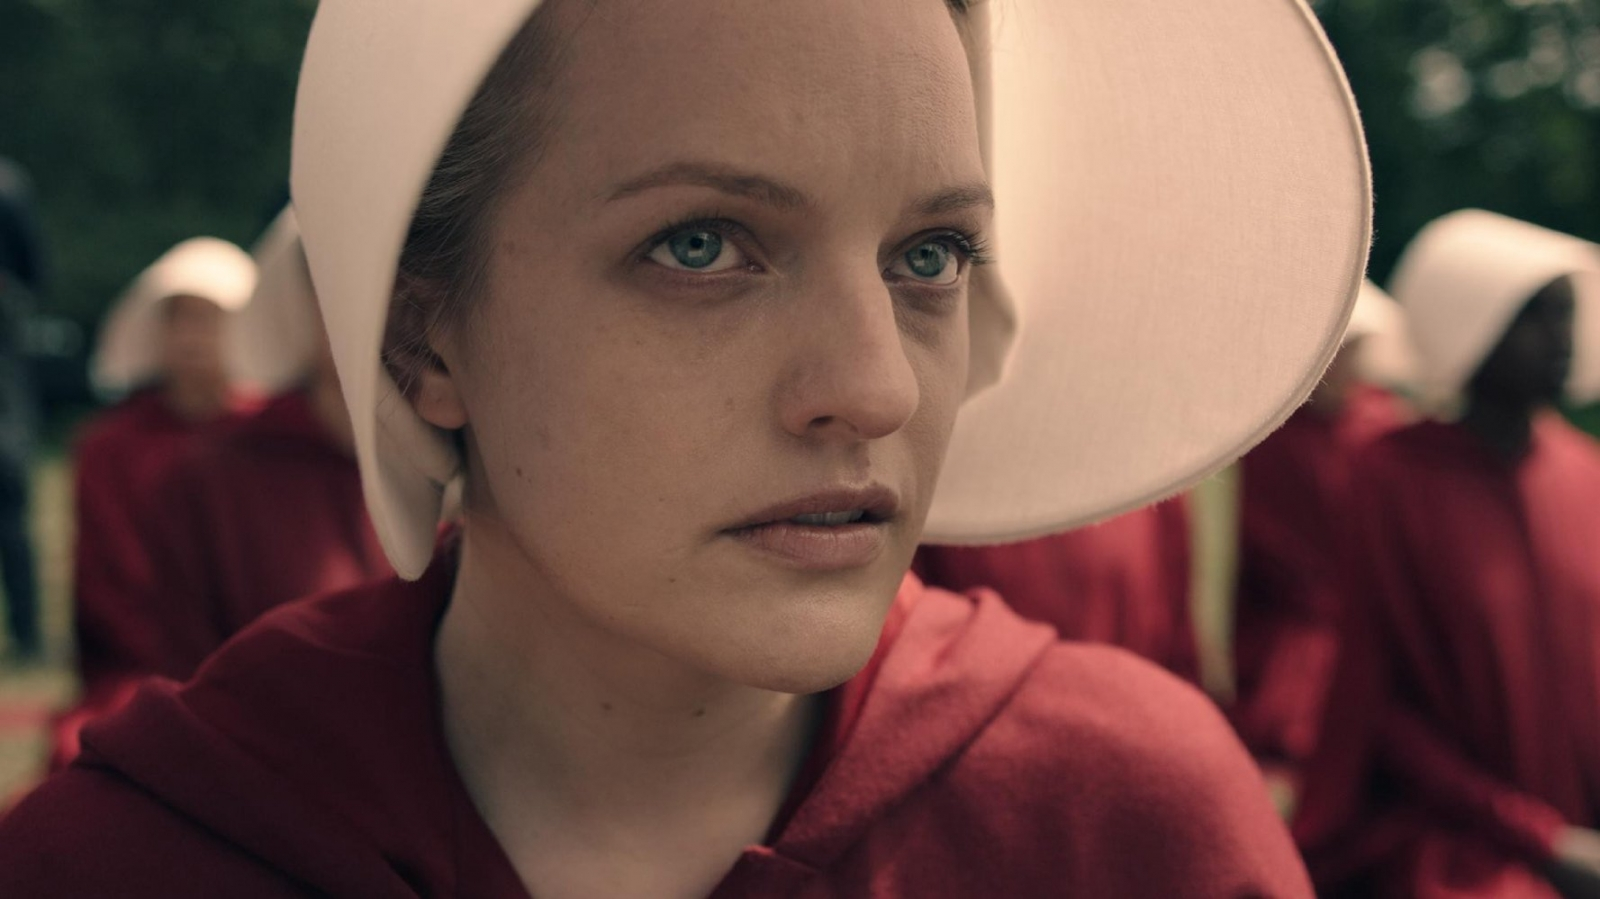 Channel 4 Acquires MGM's 'The Handmaid's Tale' for the United Kingdom